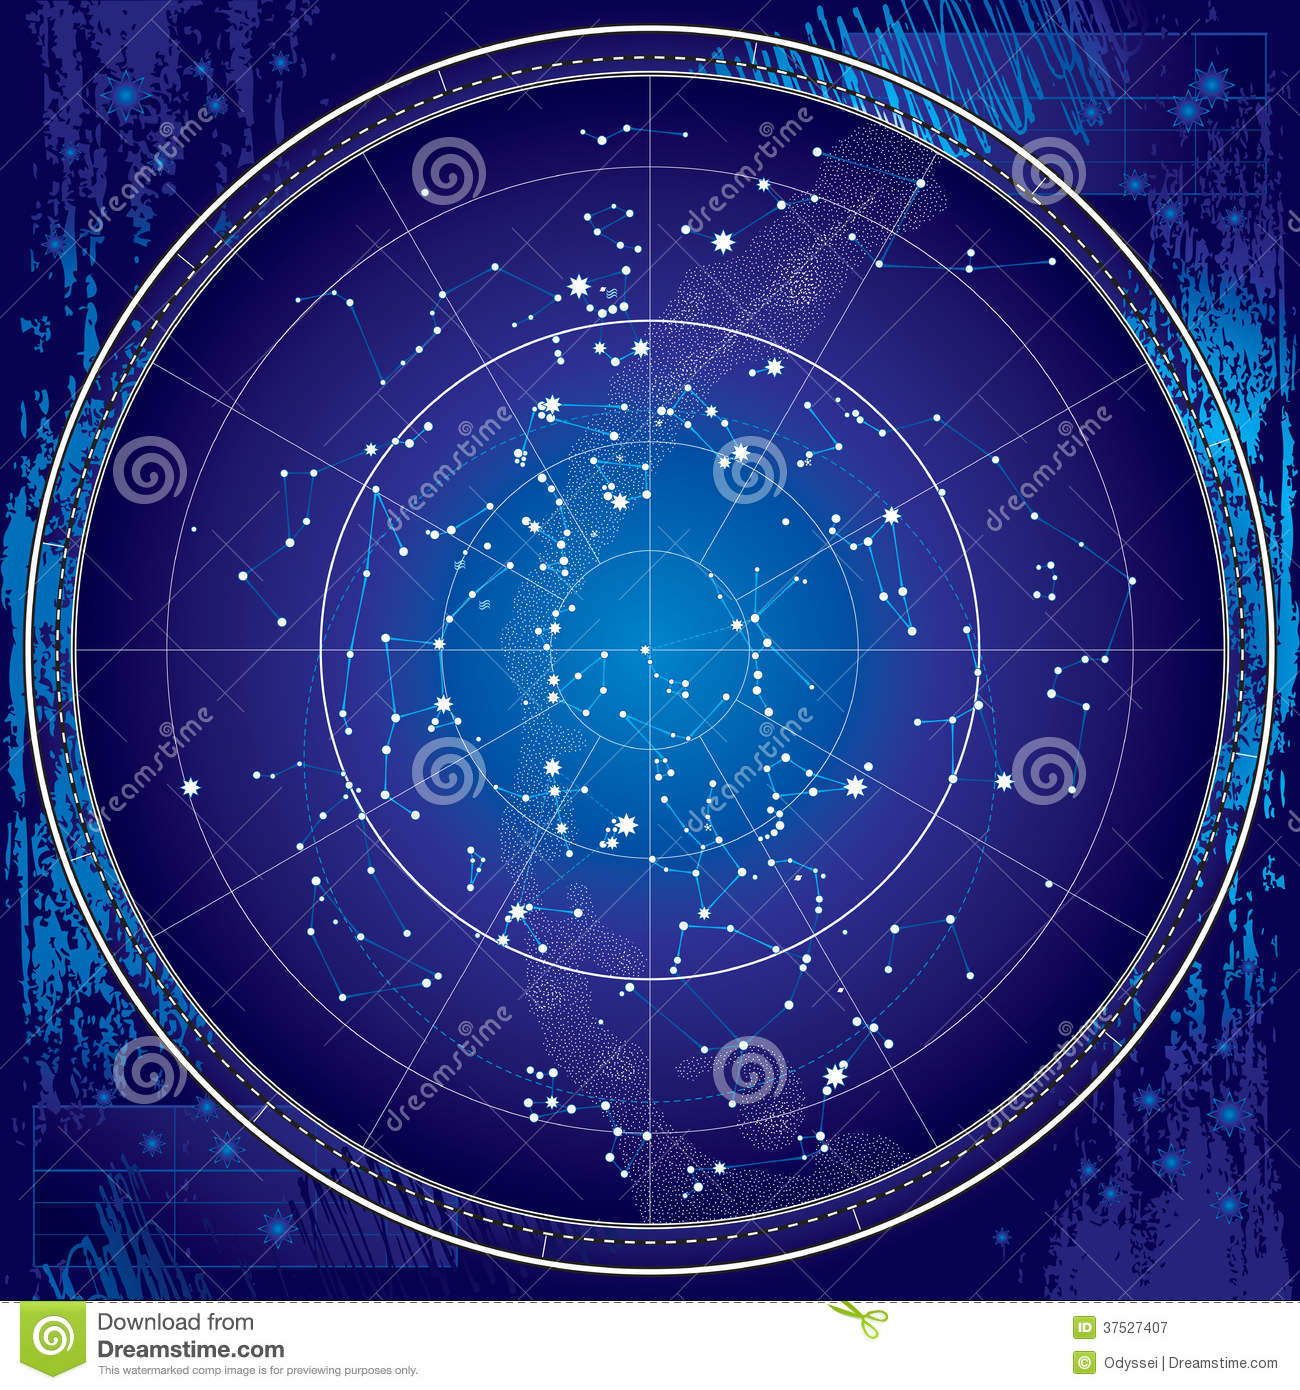 Celestial map of the night sky blueprint stock vector royalty free stock photo malvernweather Images